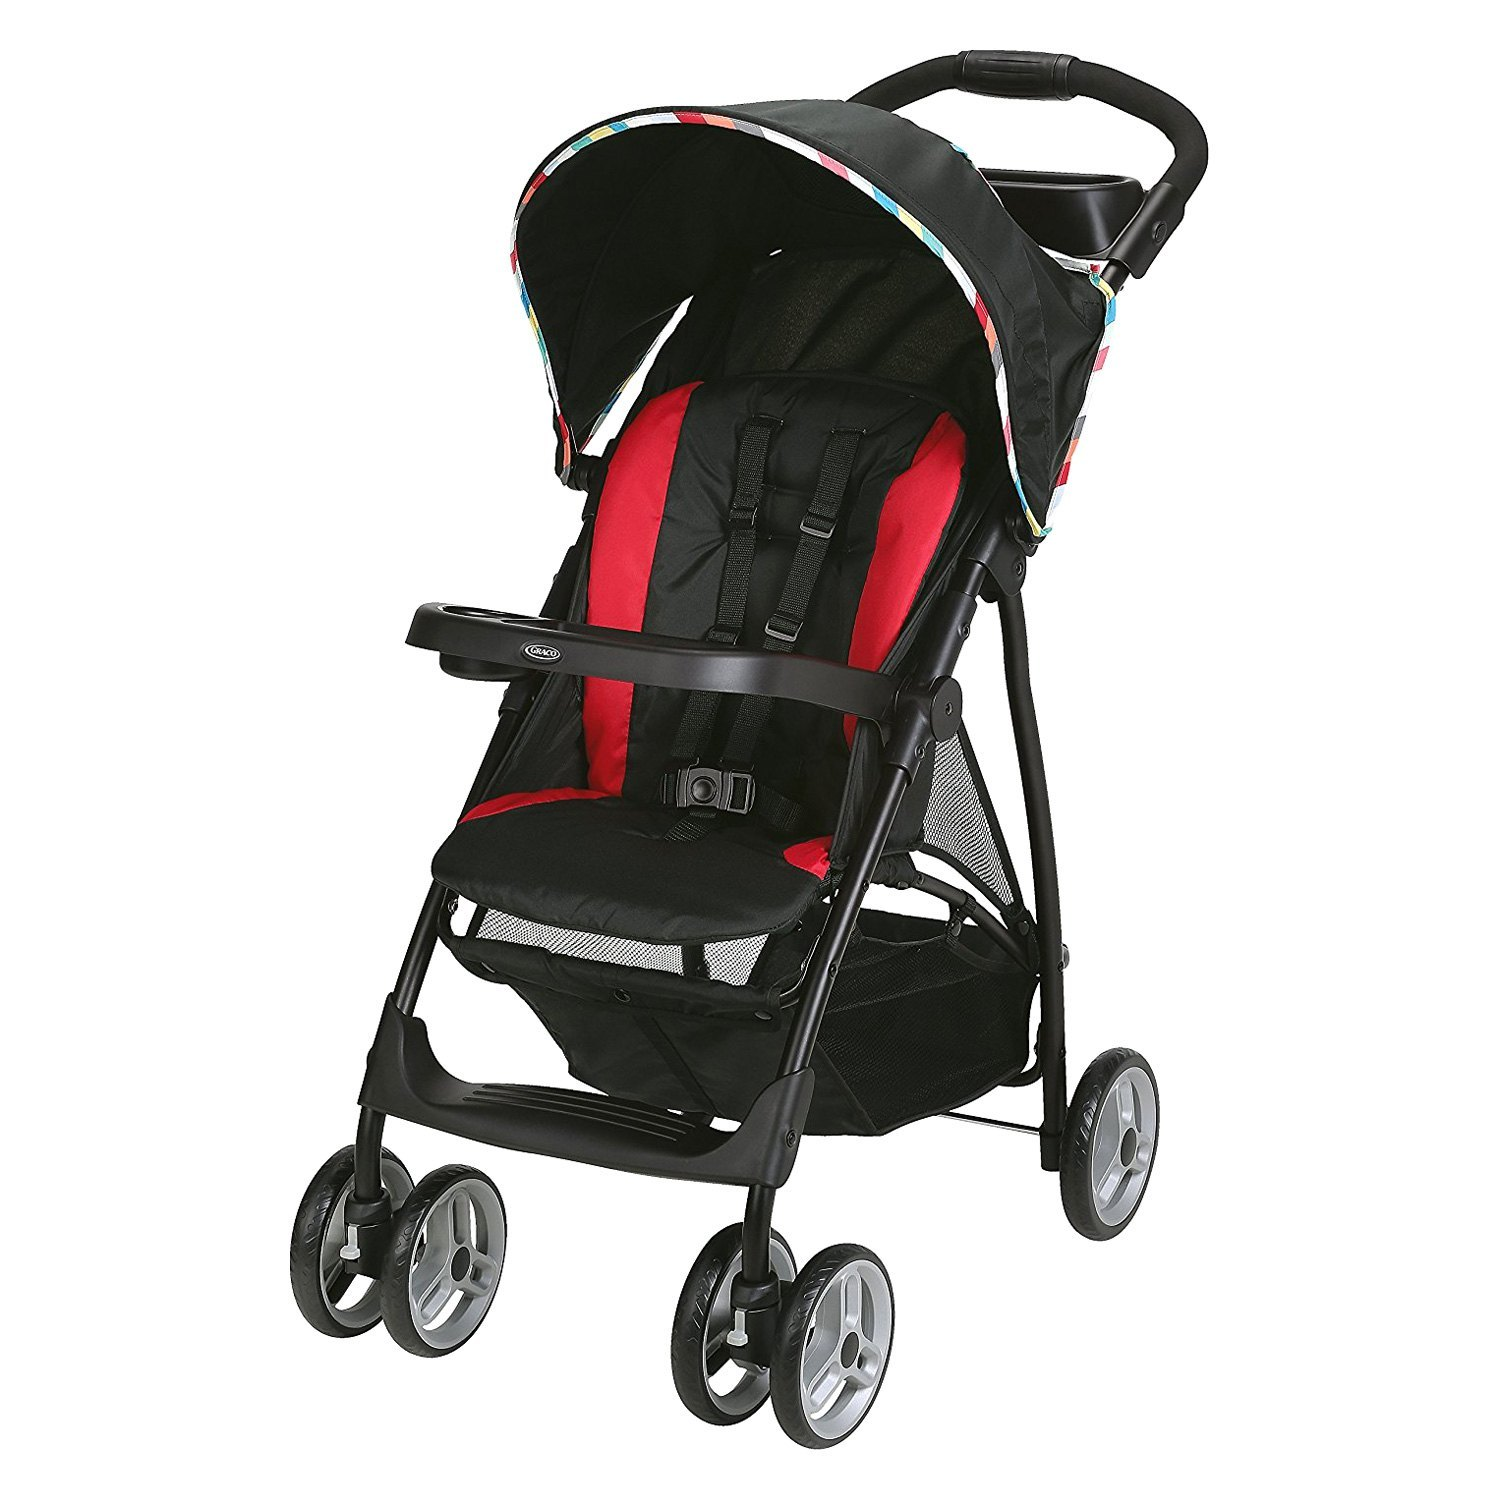 Graco Baby LiteRider™ Play Style LX Connect Stroller